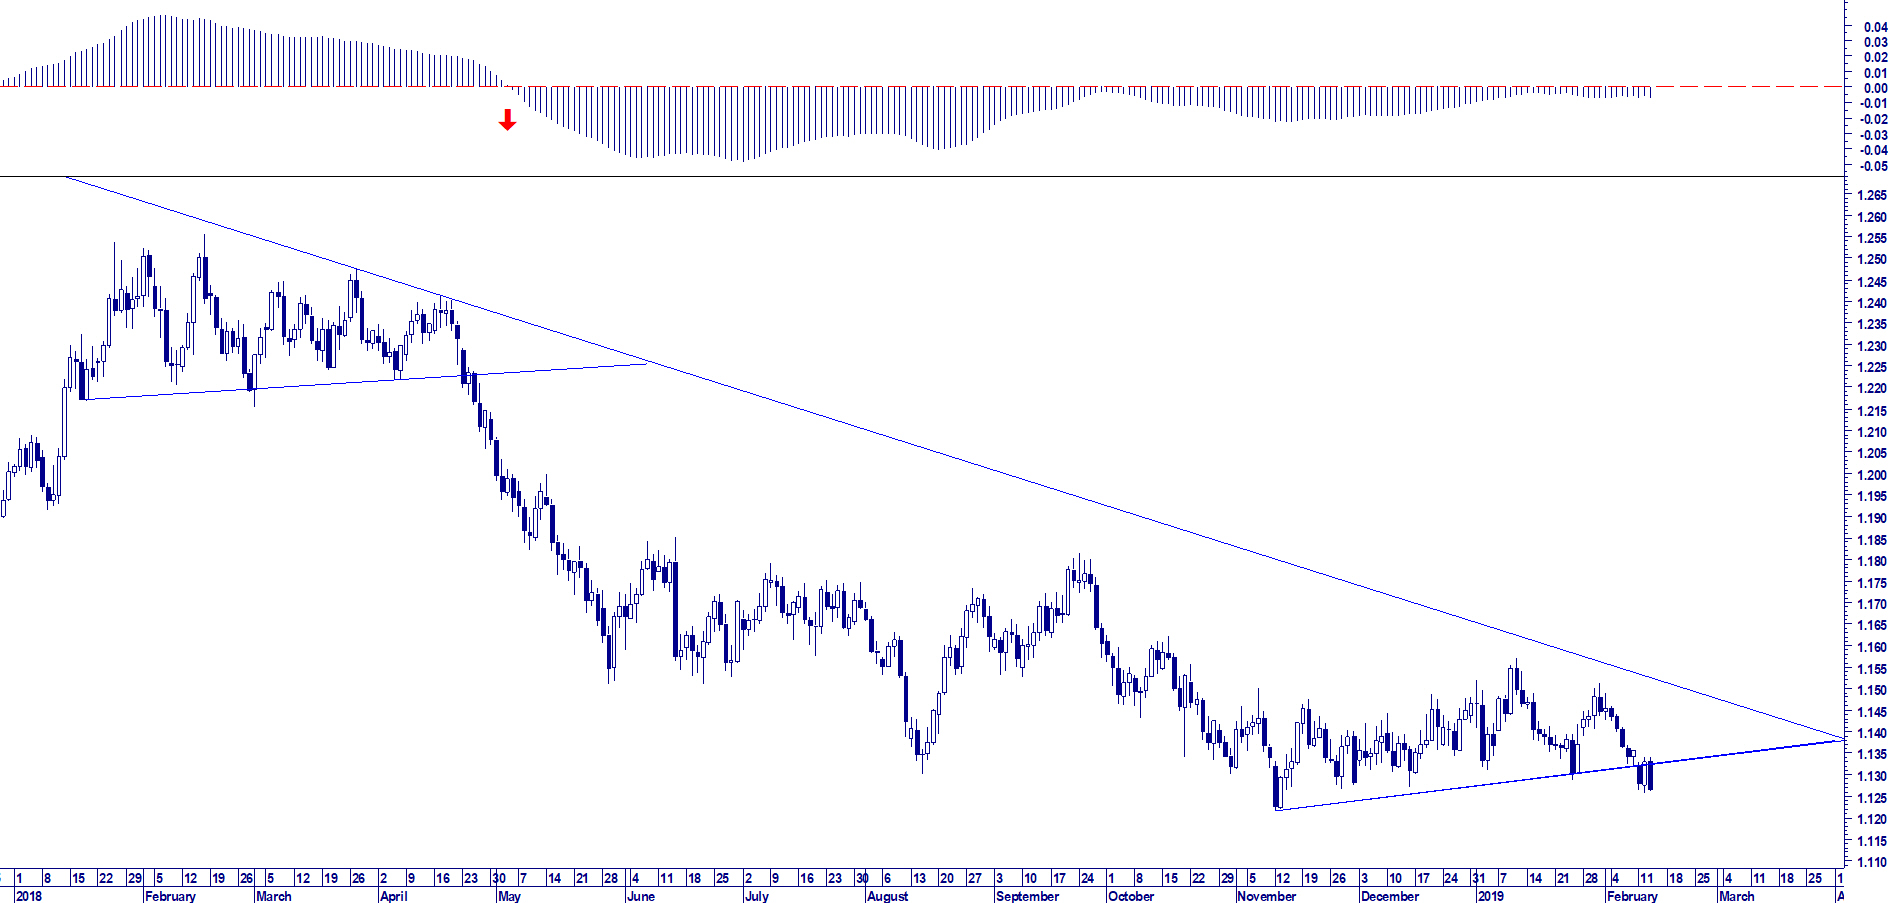 WB ENTERPRISE RISK MANAGEMENT: EUR USD DAILY BREAKOUT